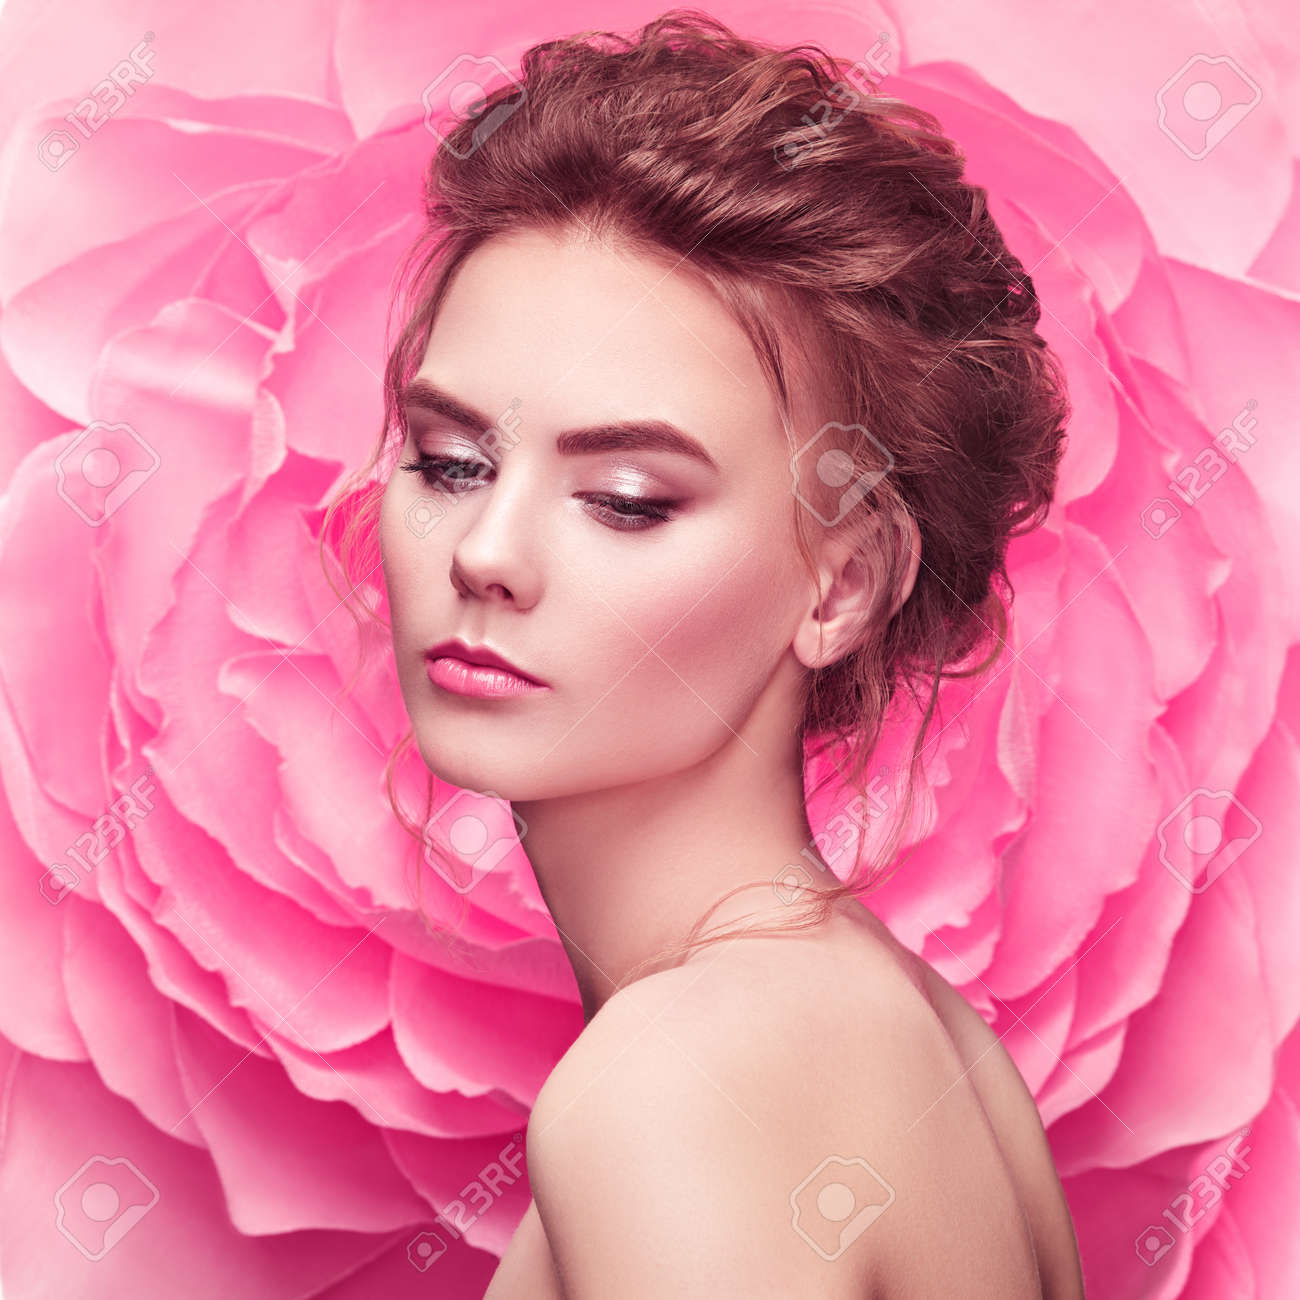 Beautiful woman on the background of a large flower. Beauty summer model girl with pink peony. Young woman with elegant hairstyle and makeup. Fashion photo - 78843194